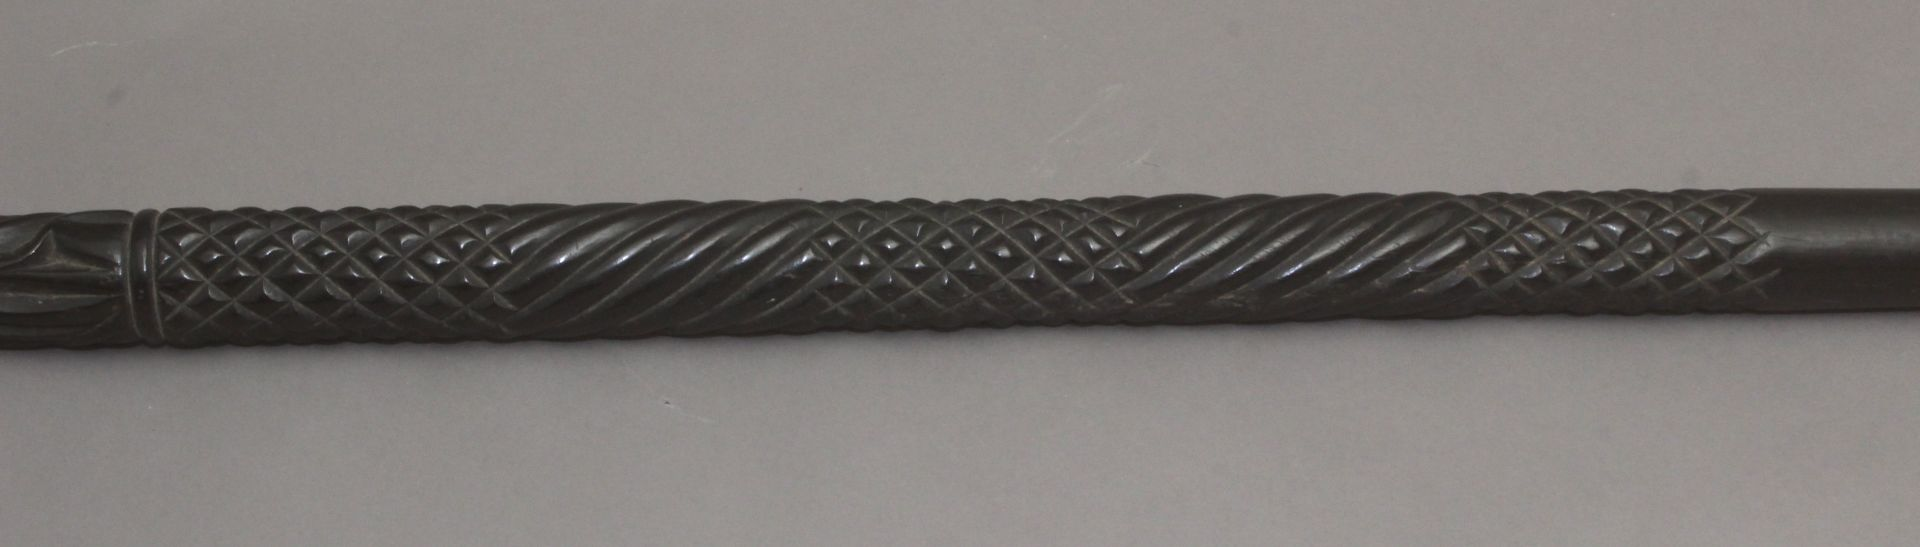 An Anglo-Indian walking cane, possibly from Ceylan, circa 1900 - Bild 7 aus 9